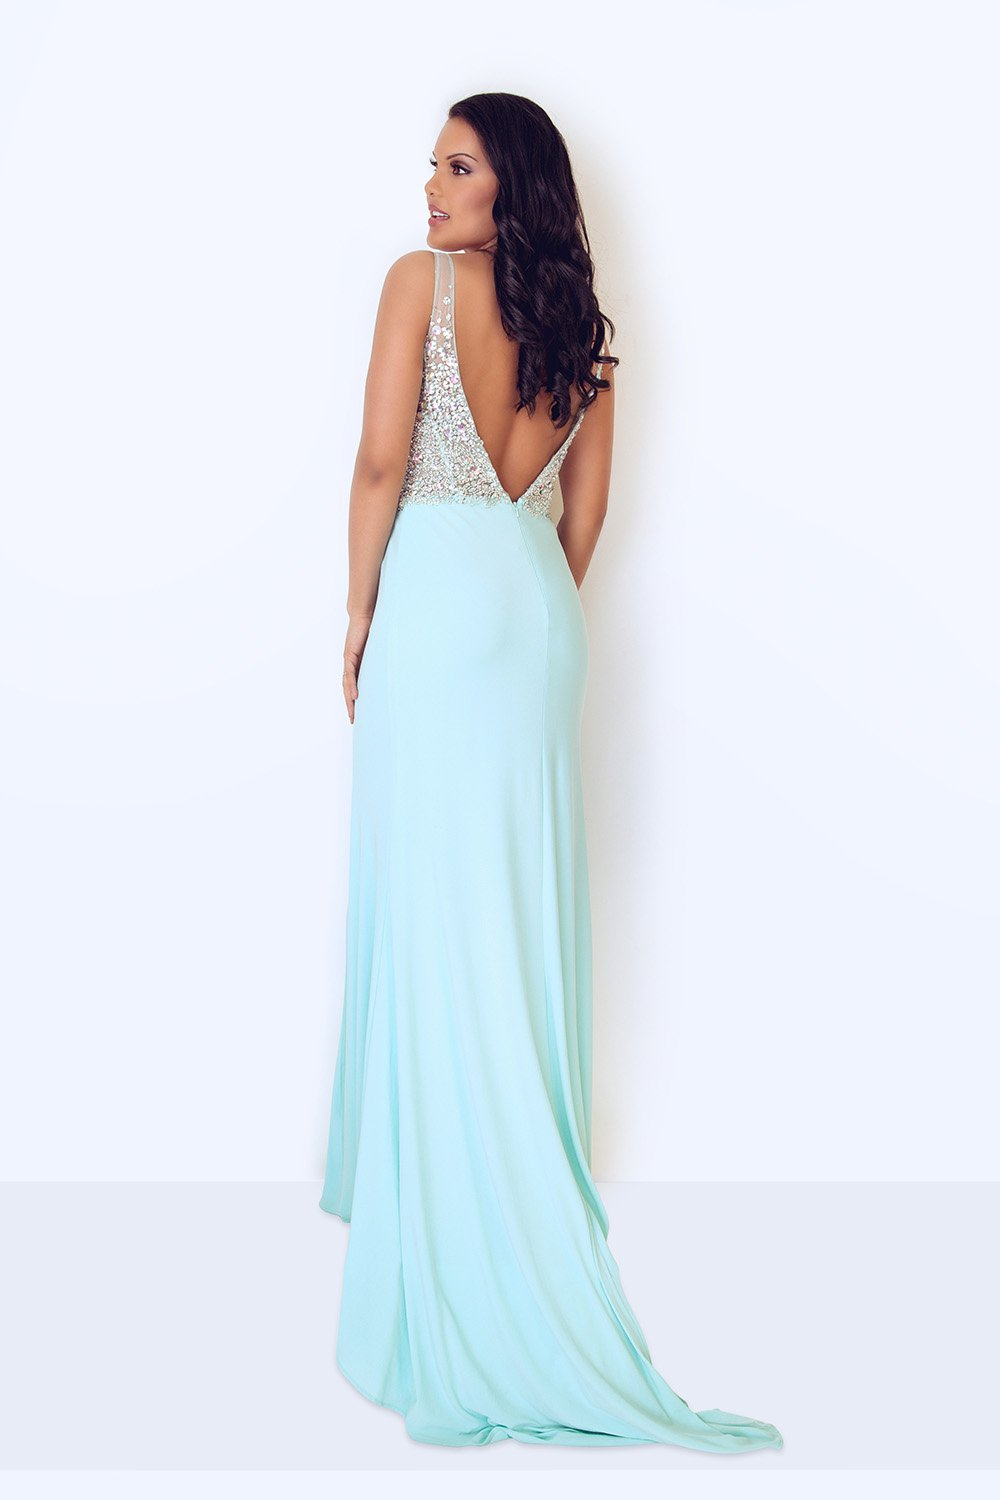 Vivienne Duck Egg Blue Long Dress - Gissings Boutique